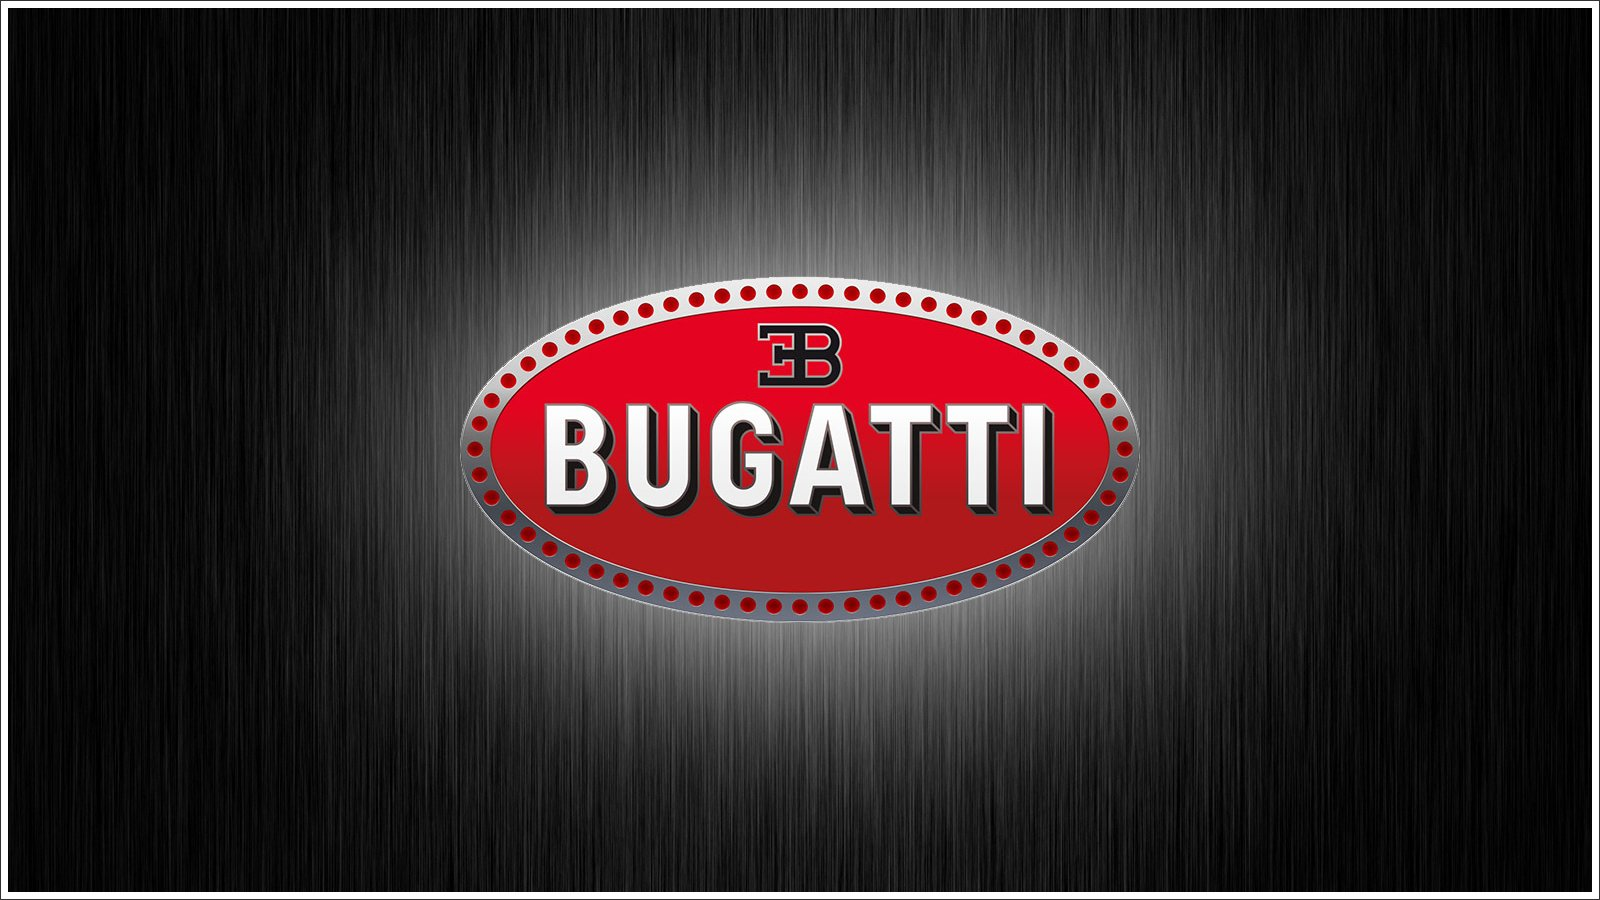 Bugatti Prize >> Bugatti Logo Meaning and History. Symbol Bugatti | World Cars Brands